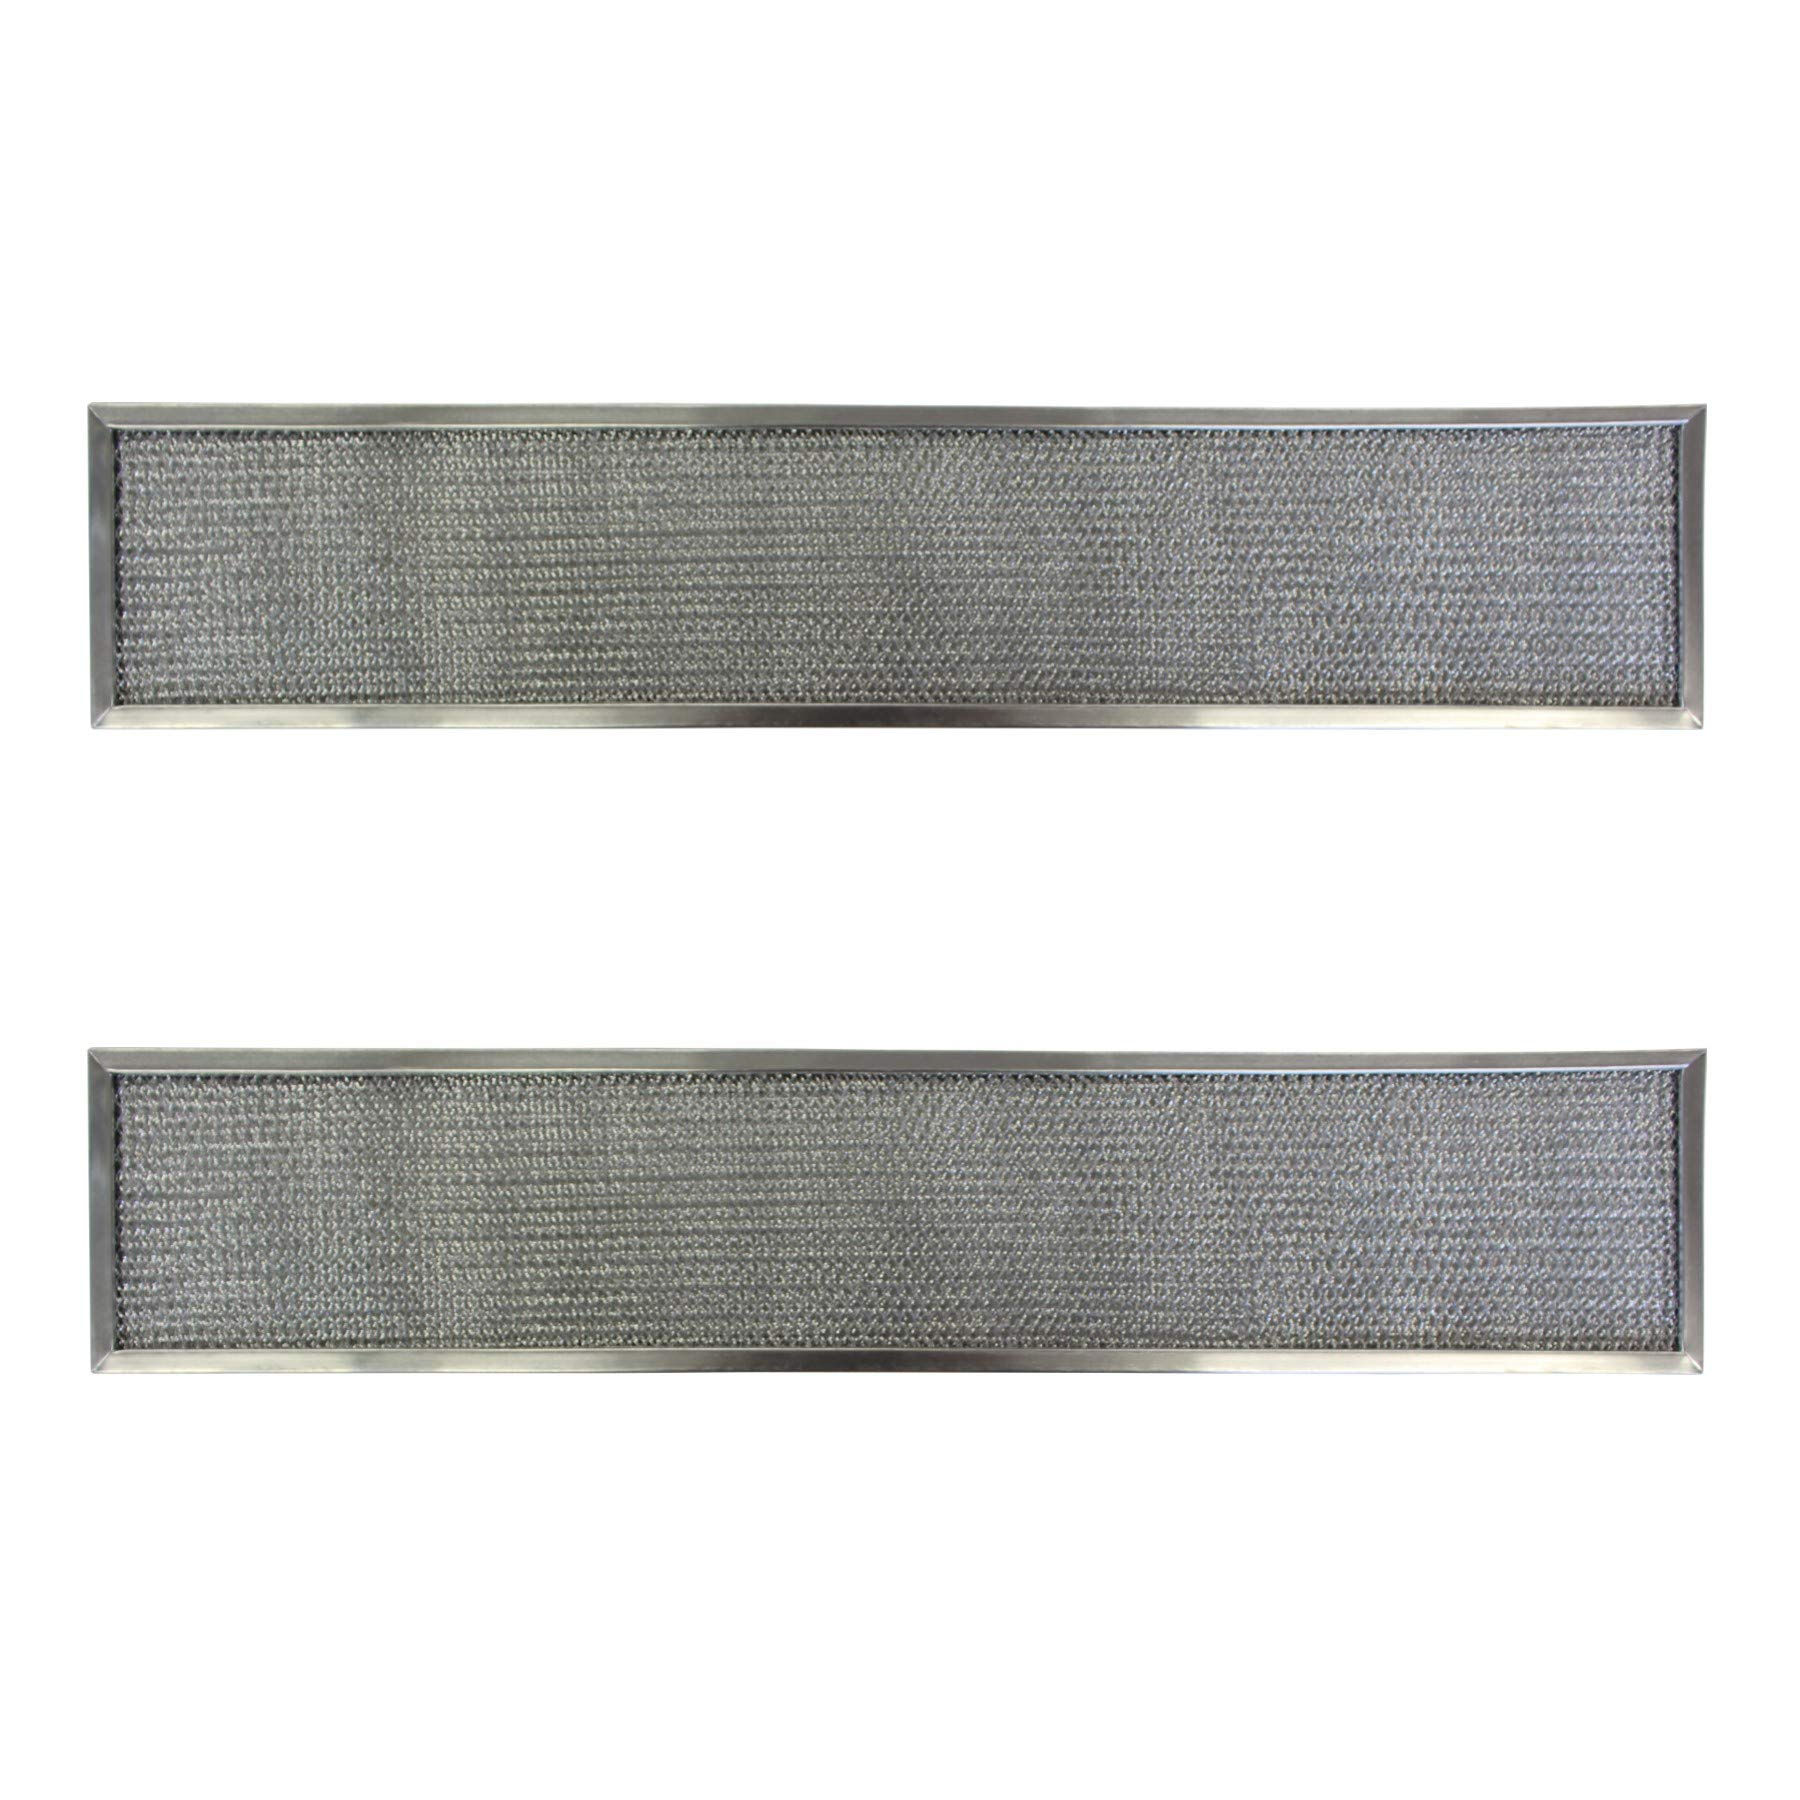 Replacement Aluminum Filters Compatible with Caloric 42021,G 8641,RHF0511  5 1/4 X 28 3/4 X 3/8 (2 P